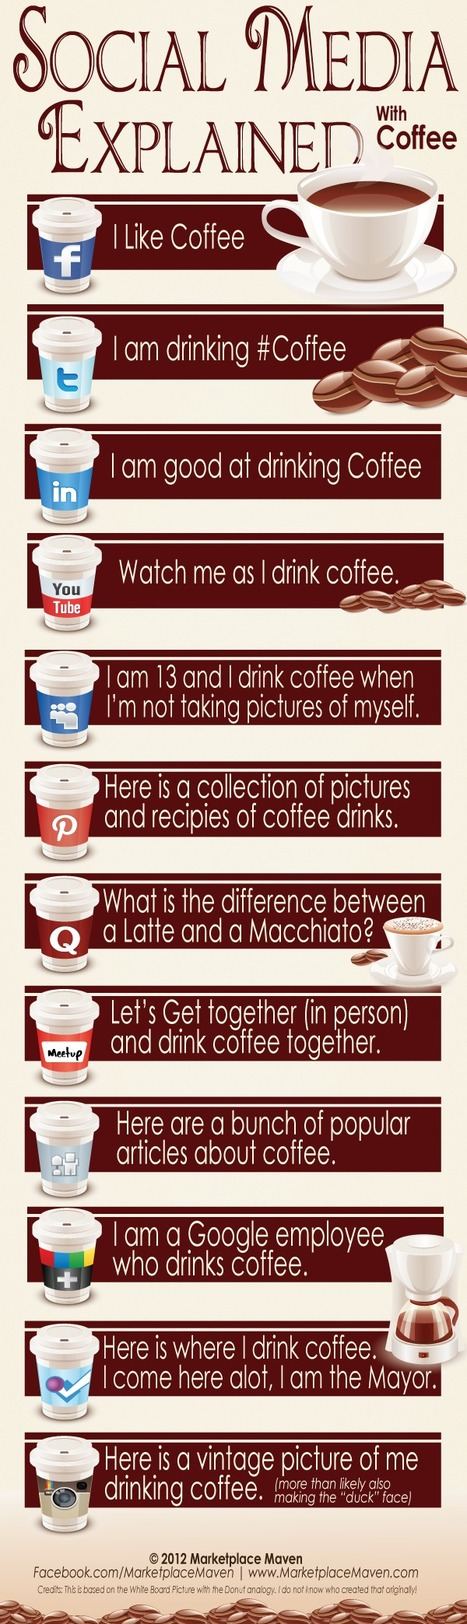 [Infographic] Social Media Explained (With Coffee) | Harris Social Media | Scoop.it